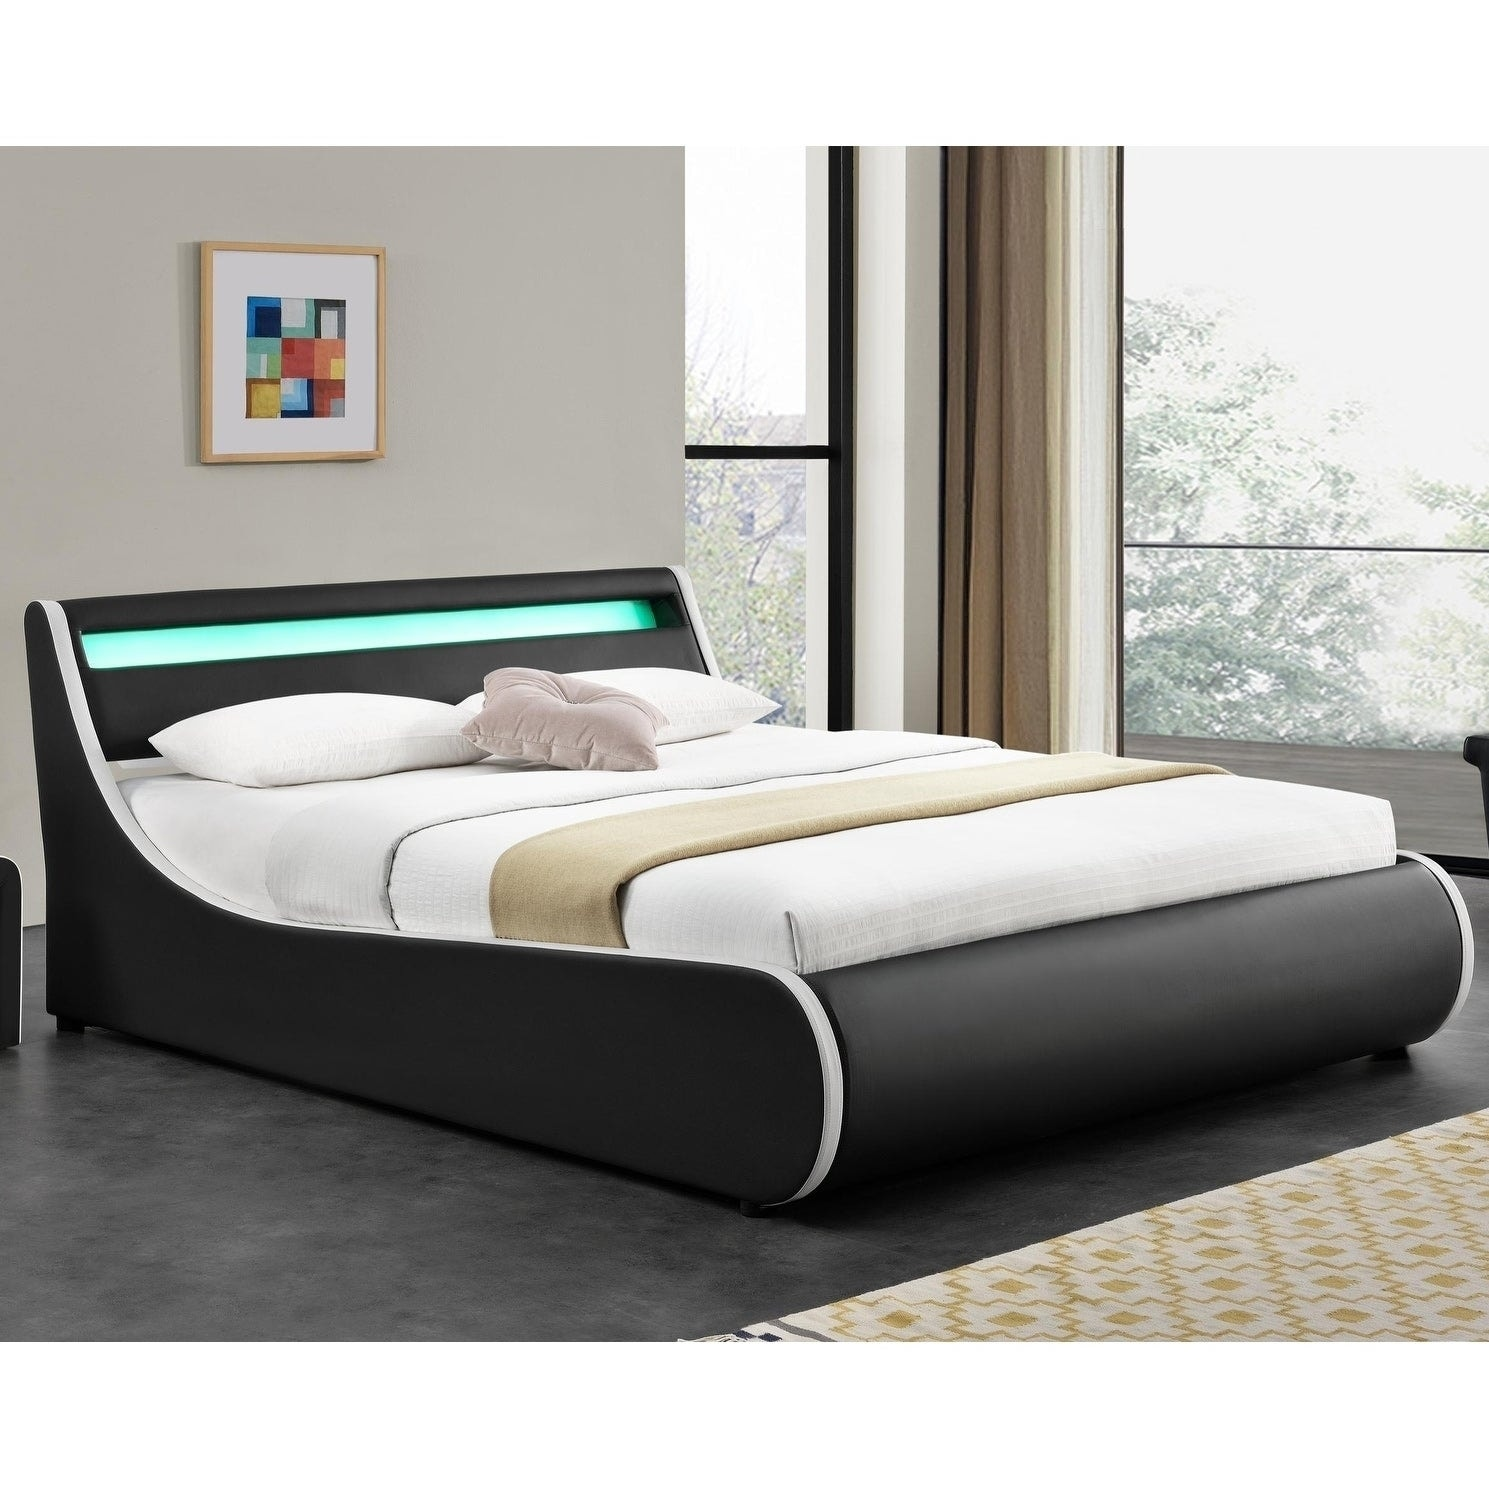 Strick Bolton Owen Black Upholstered Platform Bed With Led Lighting Overstock 29913891